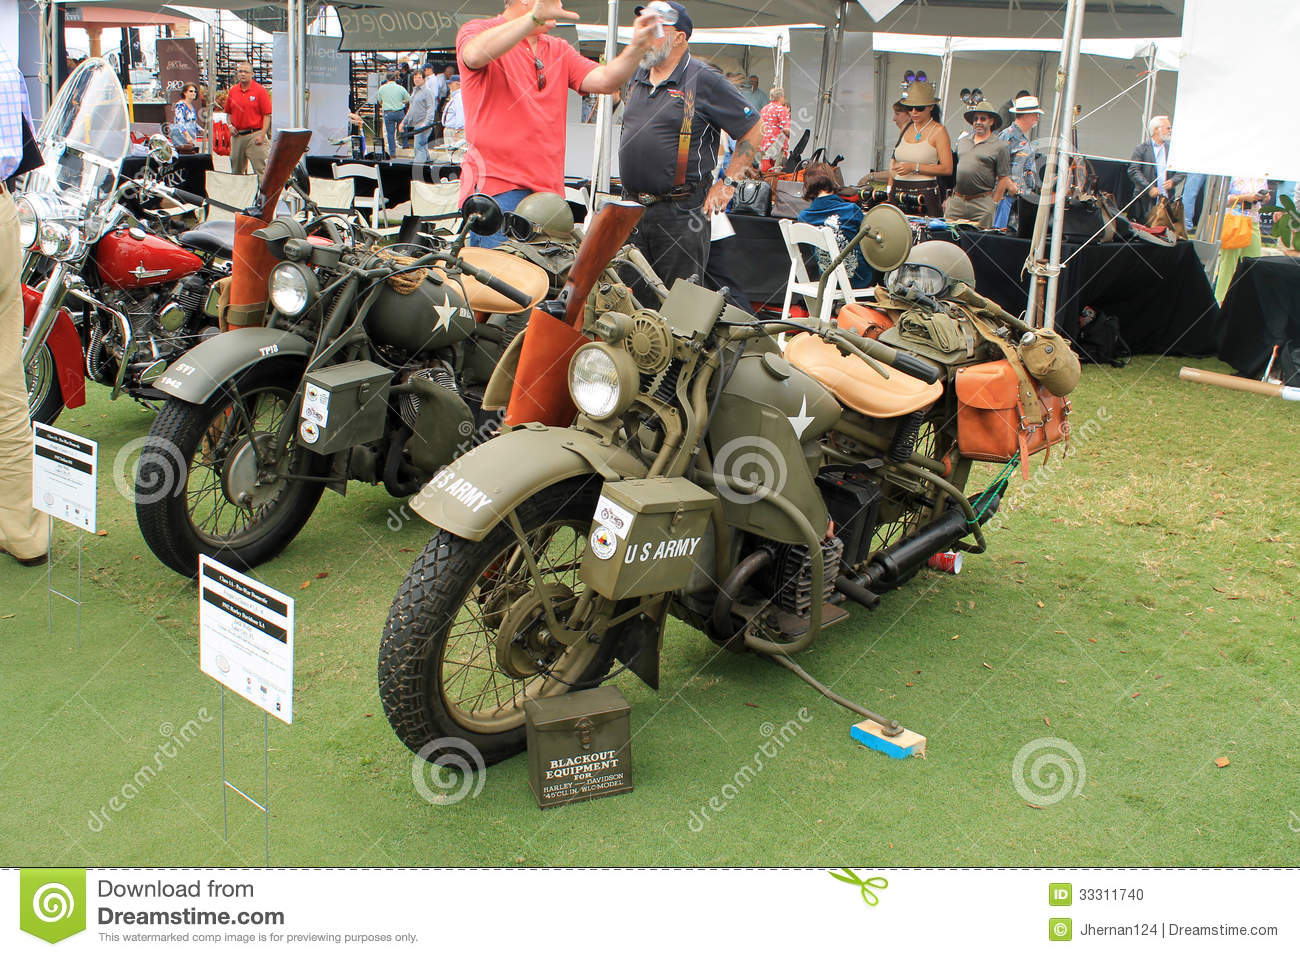 Two Vintage American Military Motorcycle Editorial Image